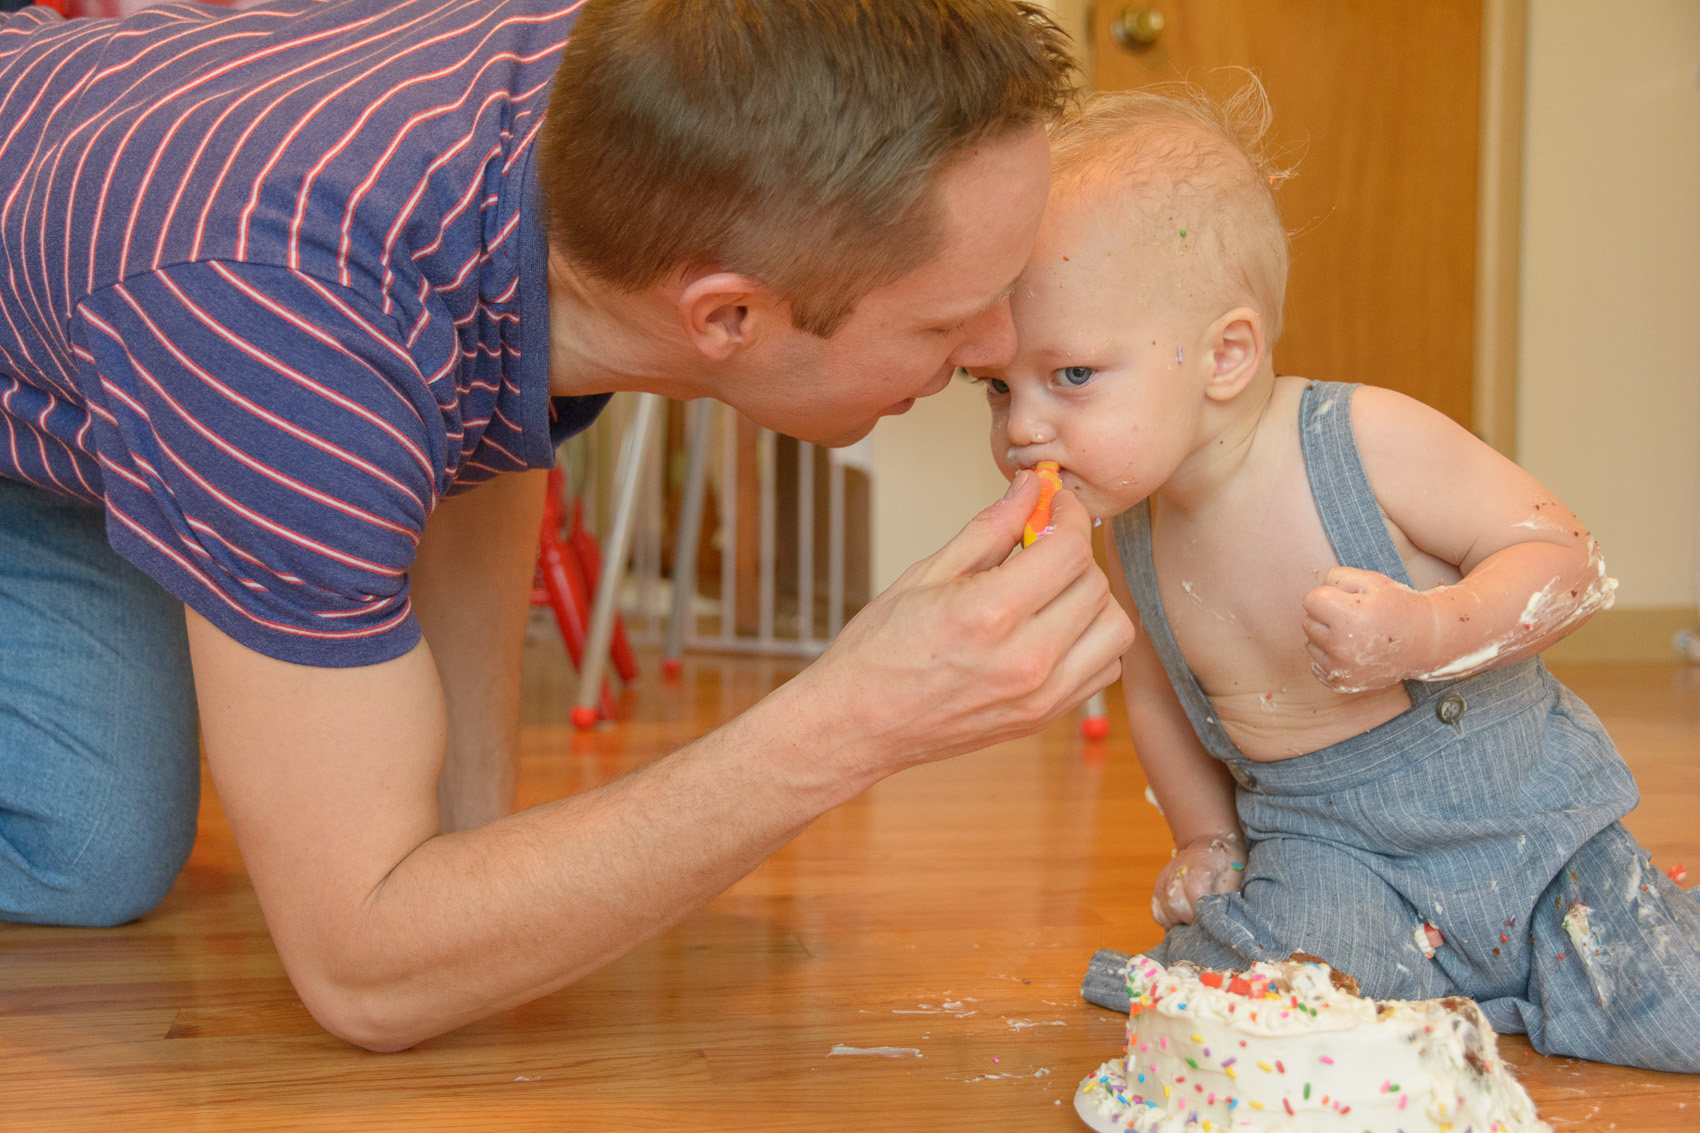 dad and baby sharing frosting off a cake